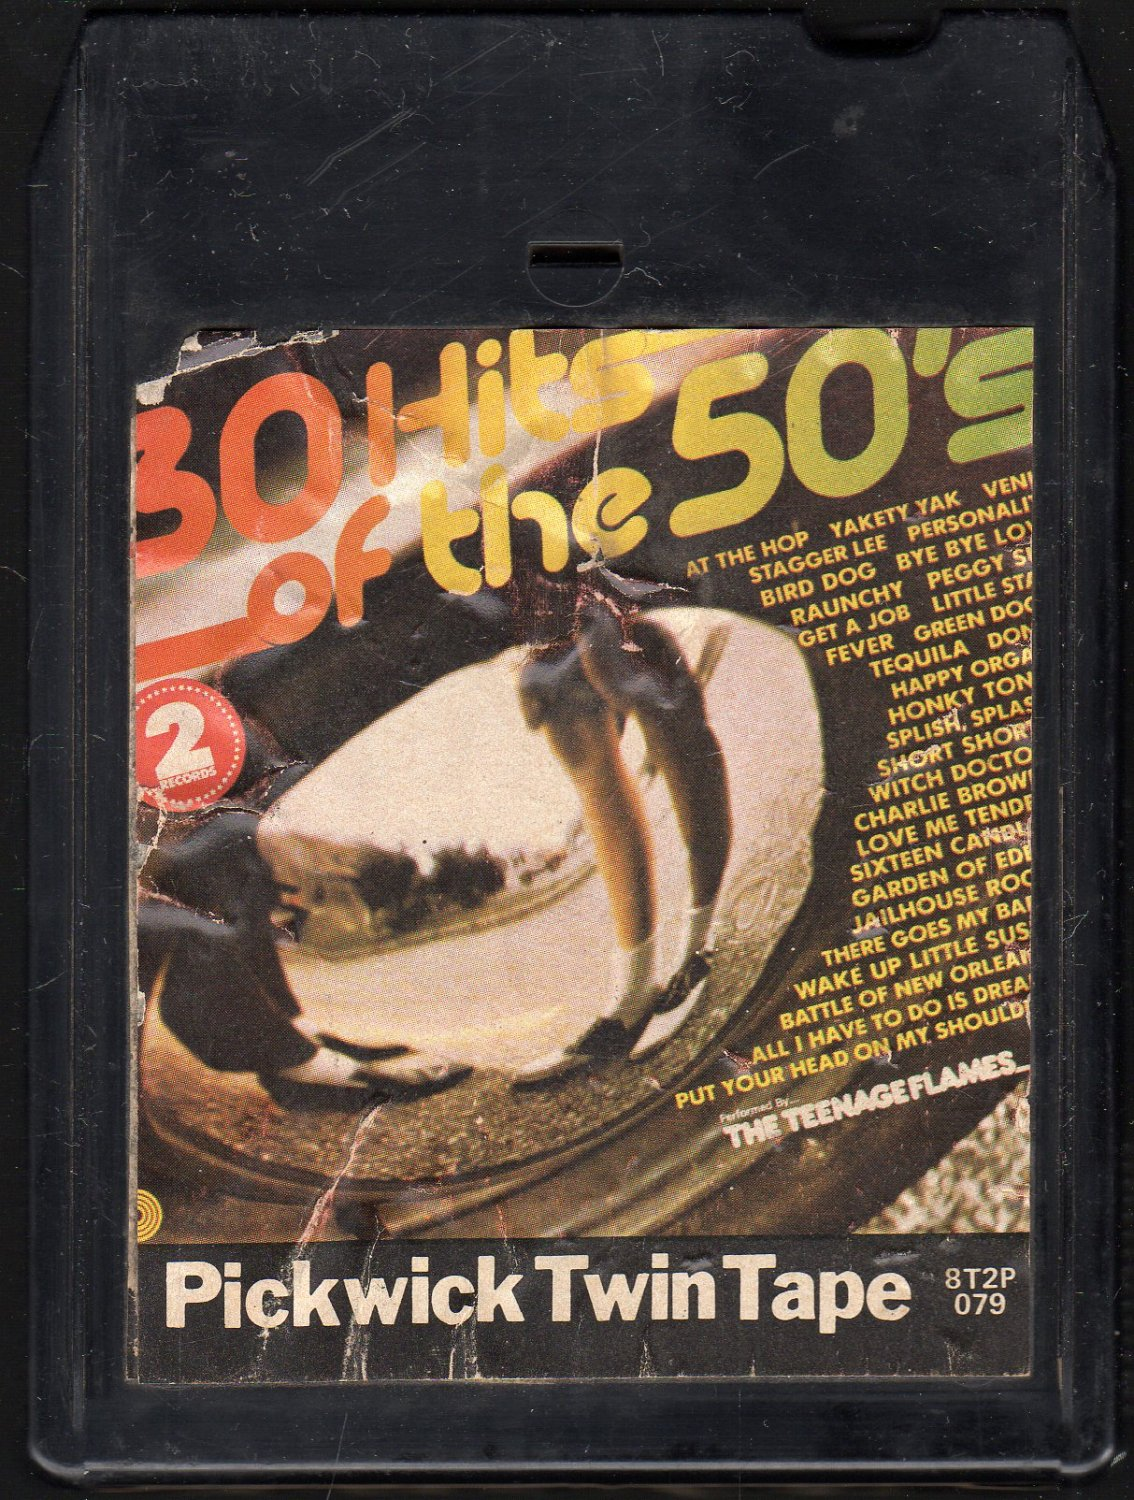 The Teenage Flames - 30 Hits Of The 50's 1974 PICKWICK A44 8-track tape